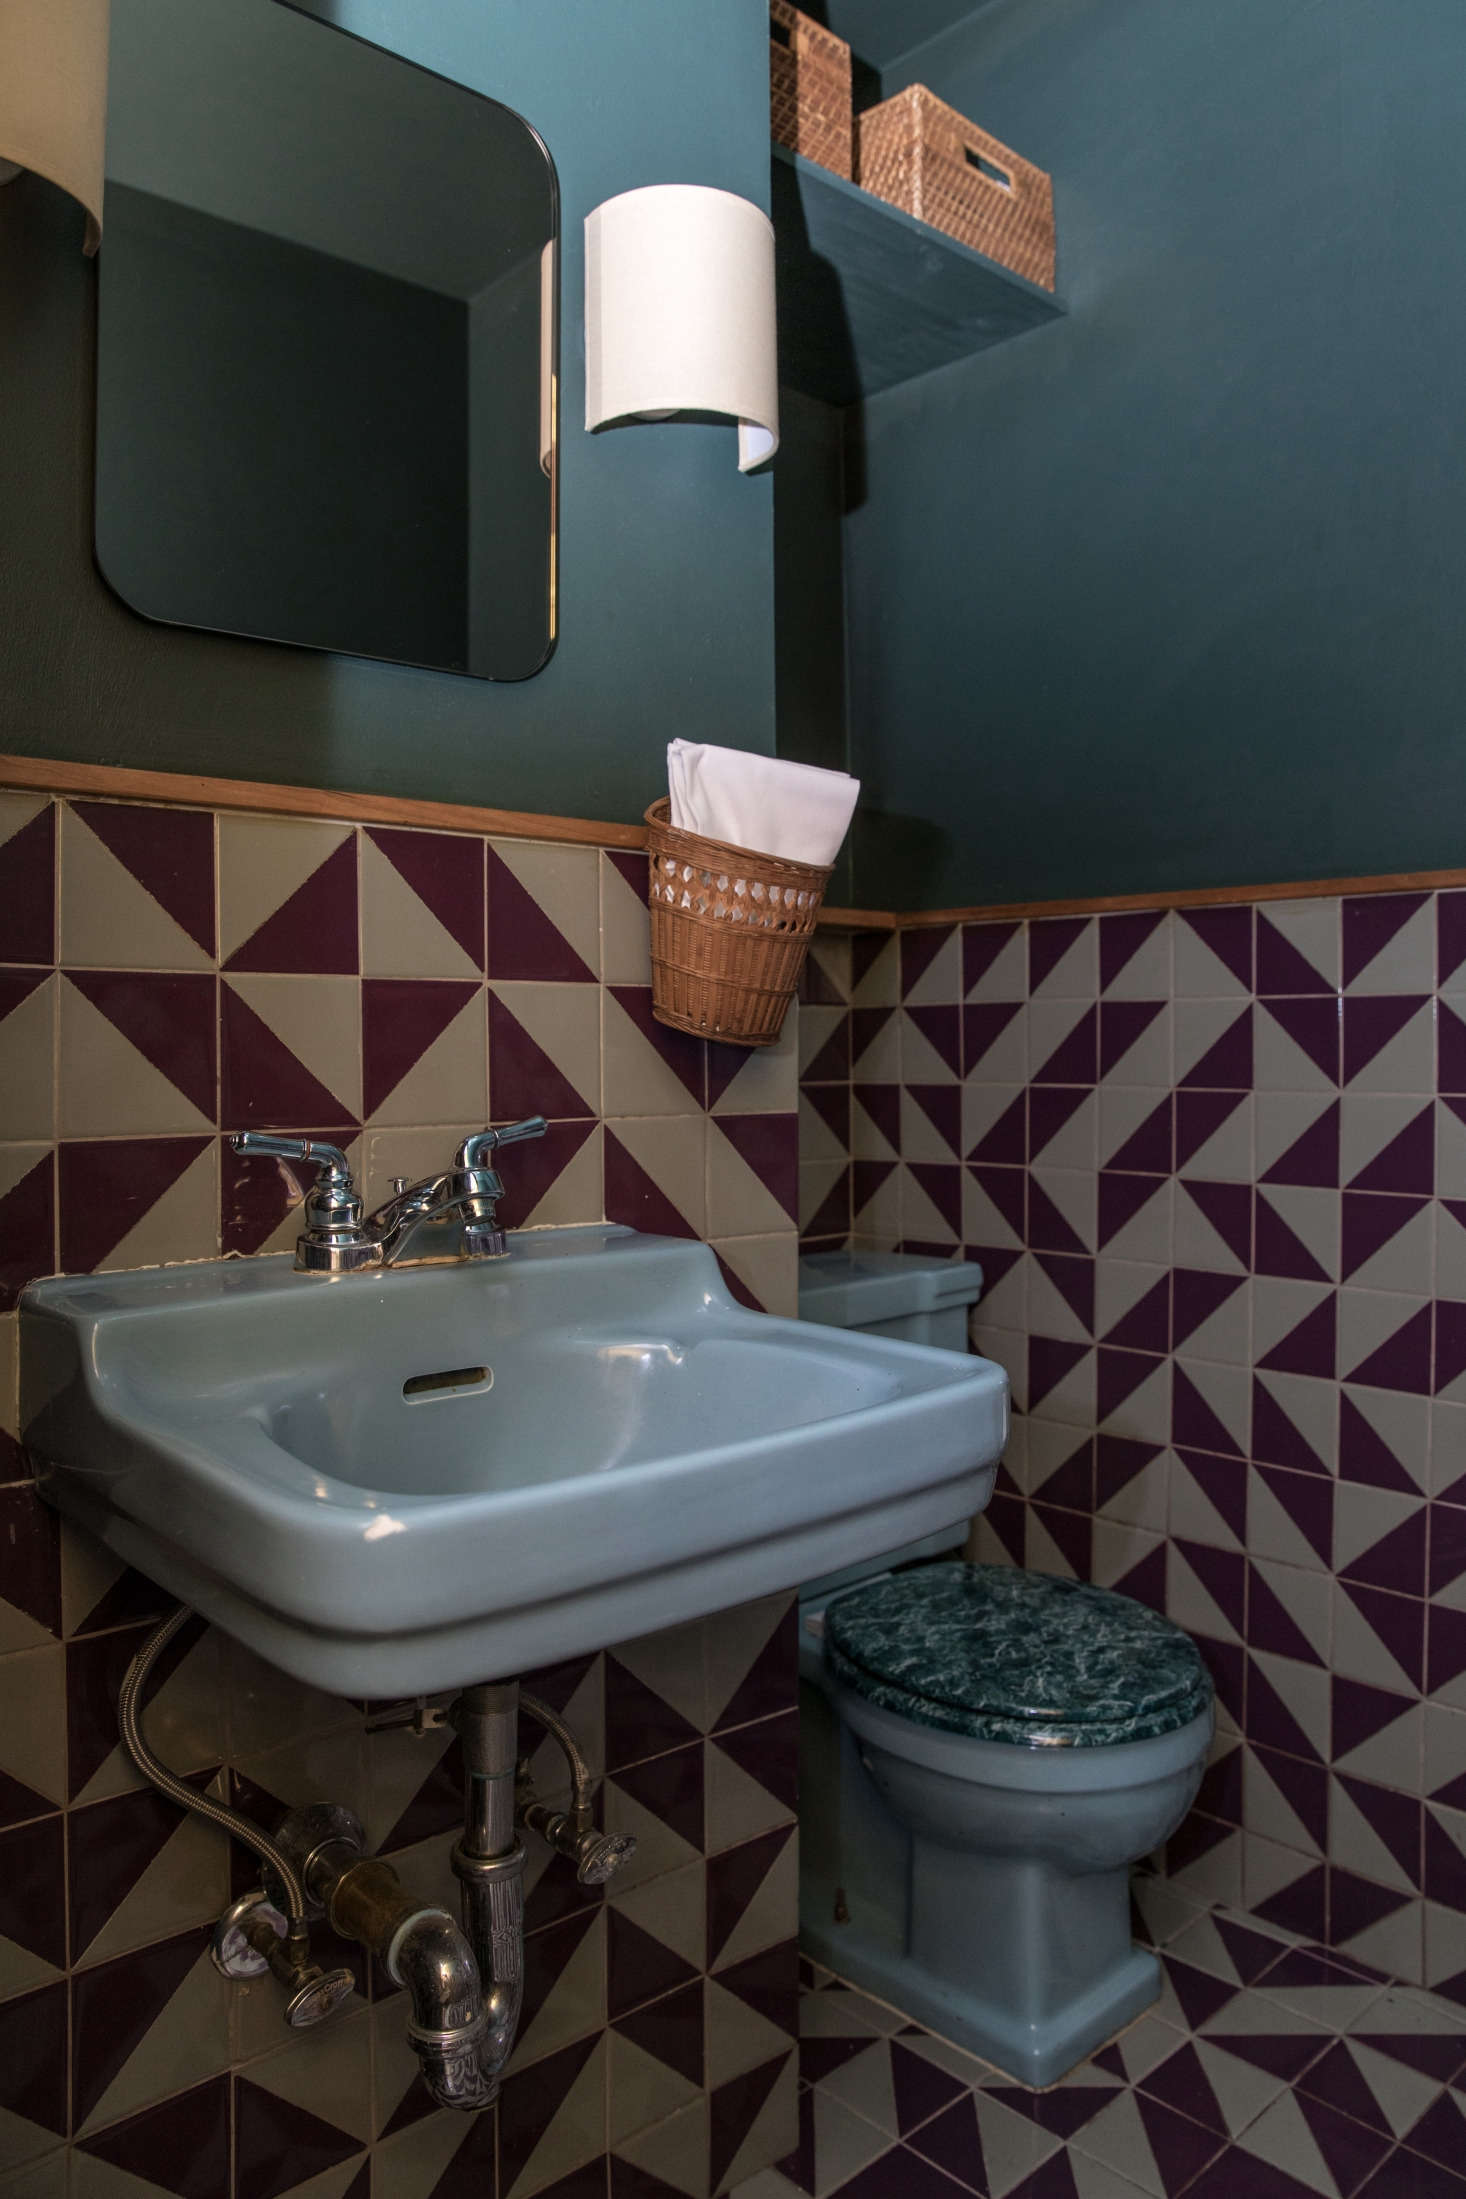 The small bathroom is not what you might expect from the rest of the space. &#8